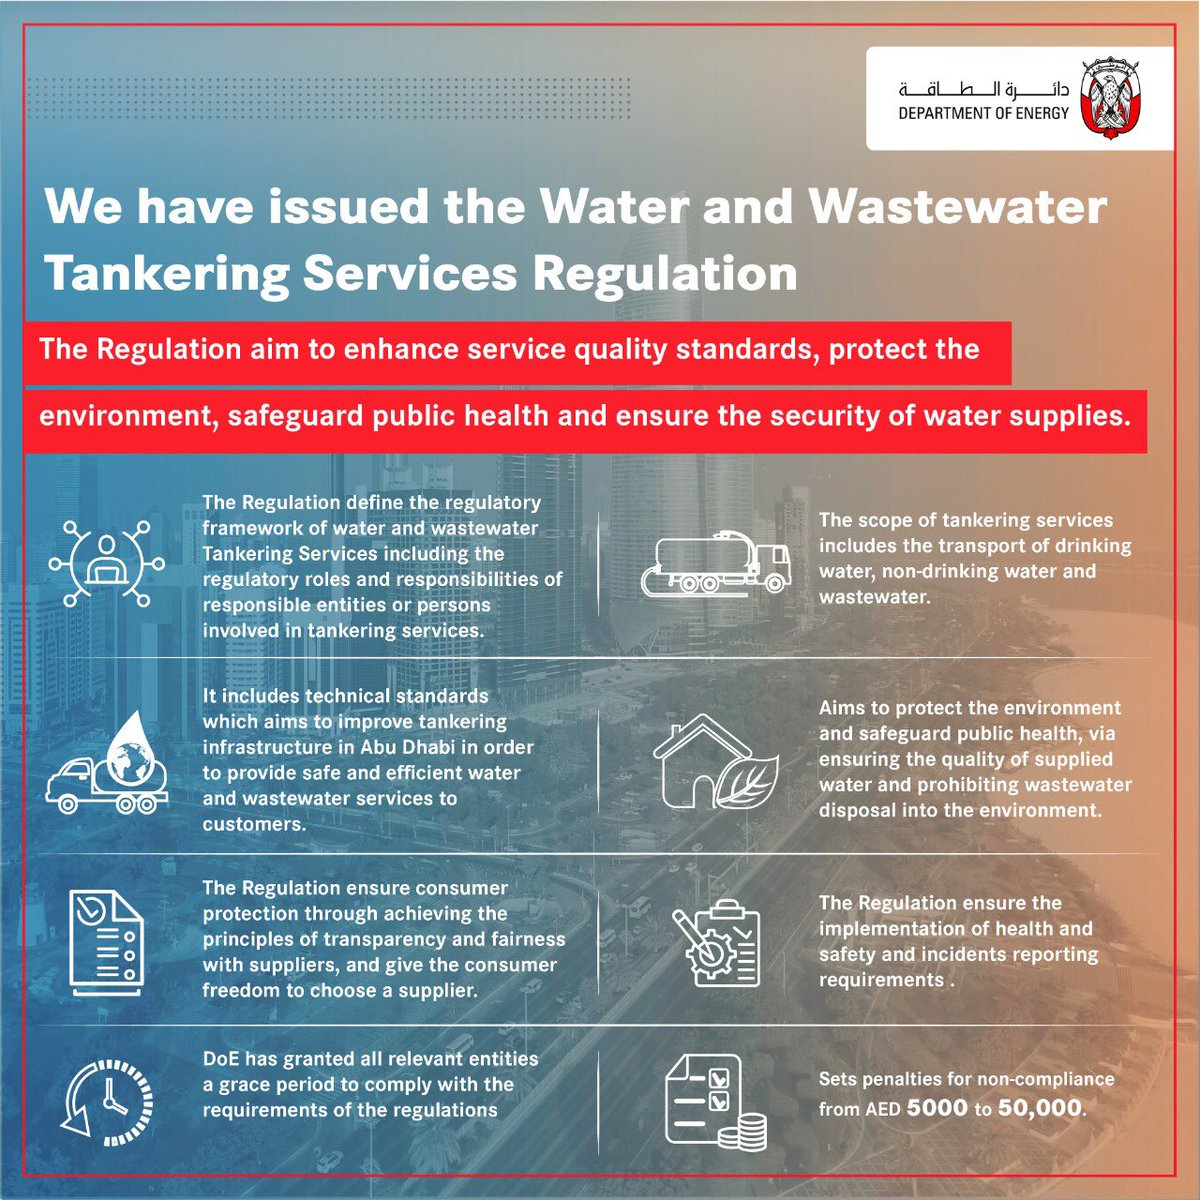 We have issued the Water and Wastewater Tankering Services Regulation to improve service quality standards, protect the environment, safeguard public health, ensure the security of water supplies with the highest international quality standards, and protect water from wastage. https://t.co/luDtMDoDDI